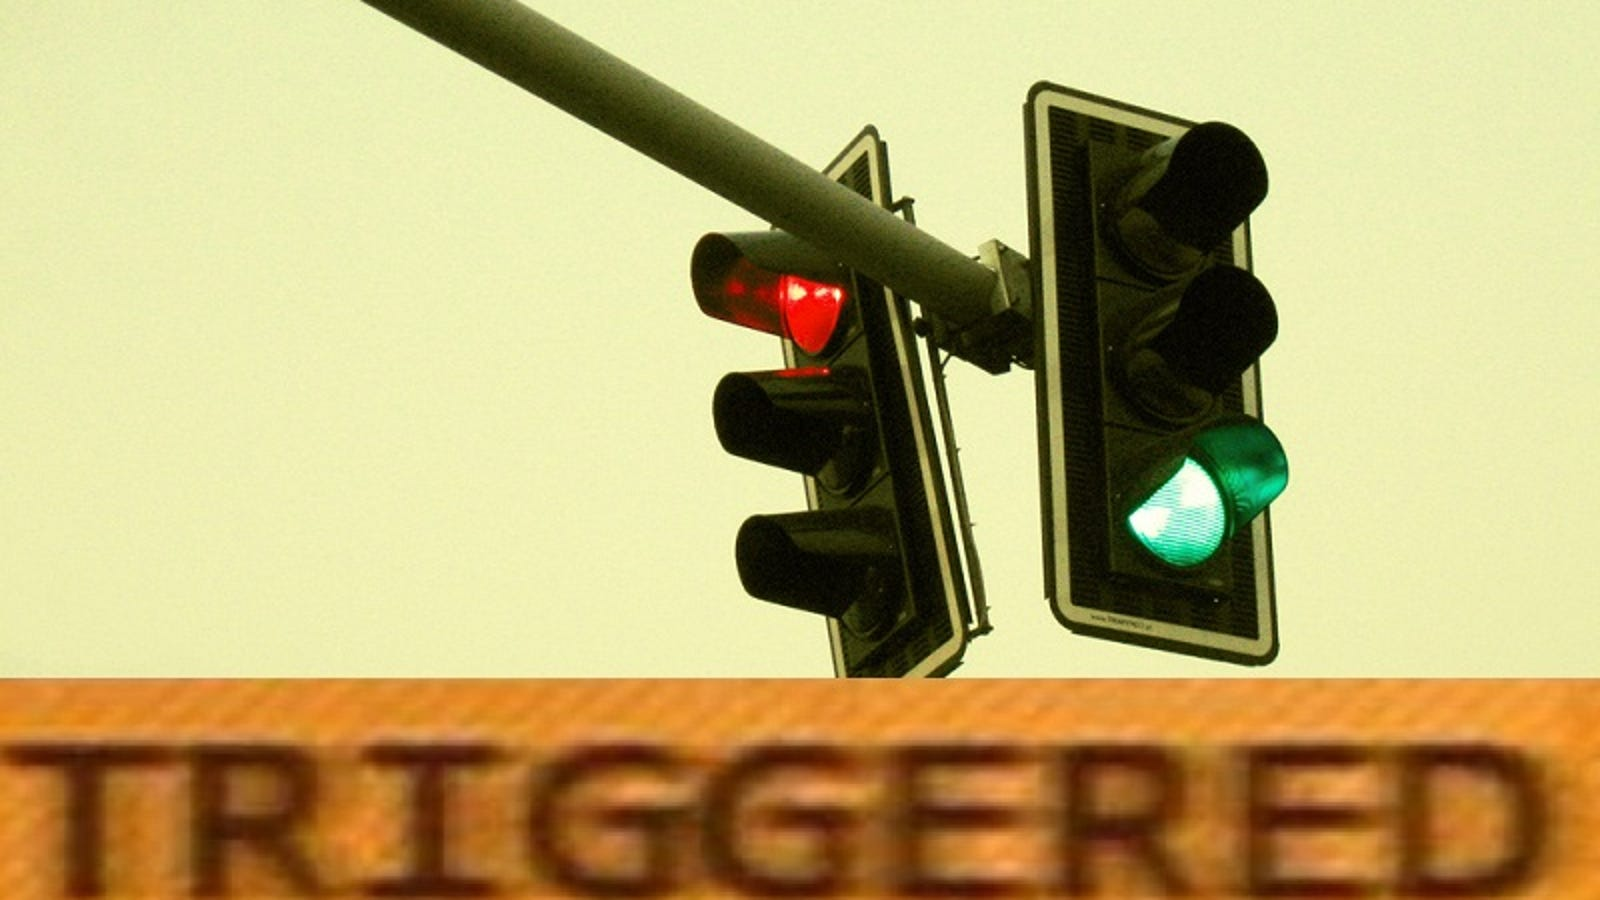 How To Trigger A Green Traffic Light Trafficsignallightcontroldiagram3